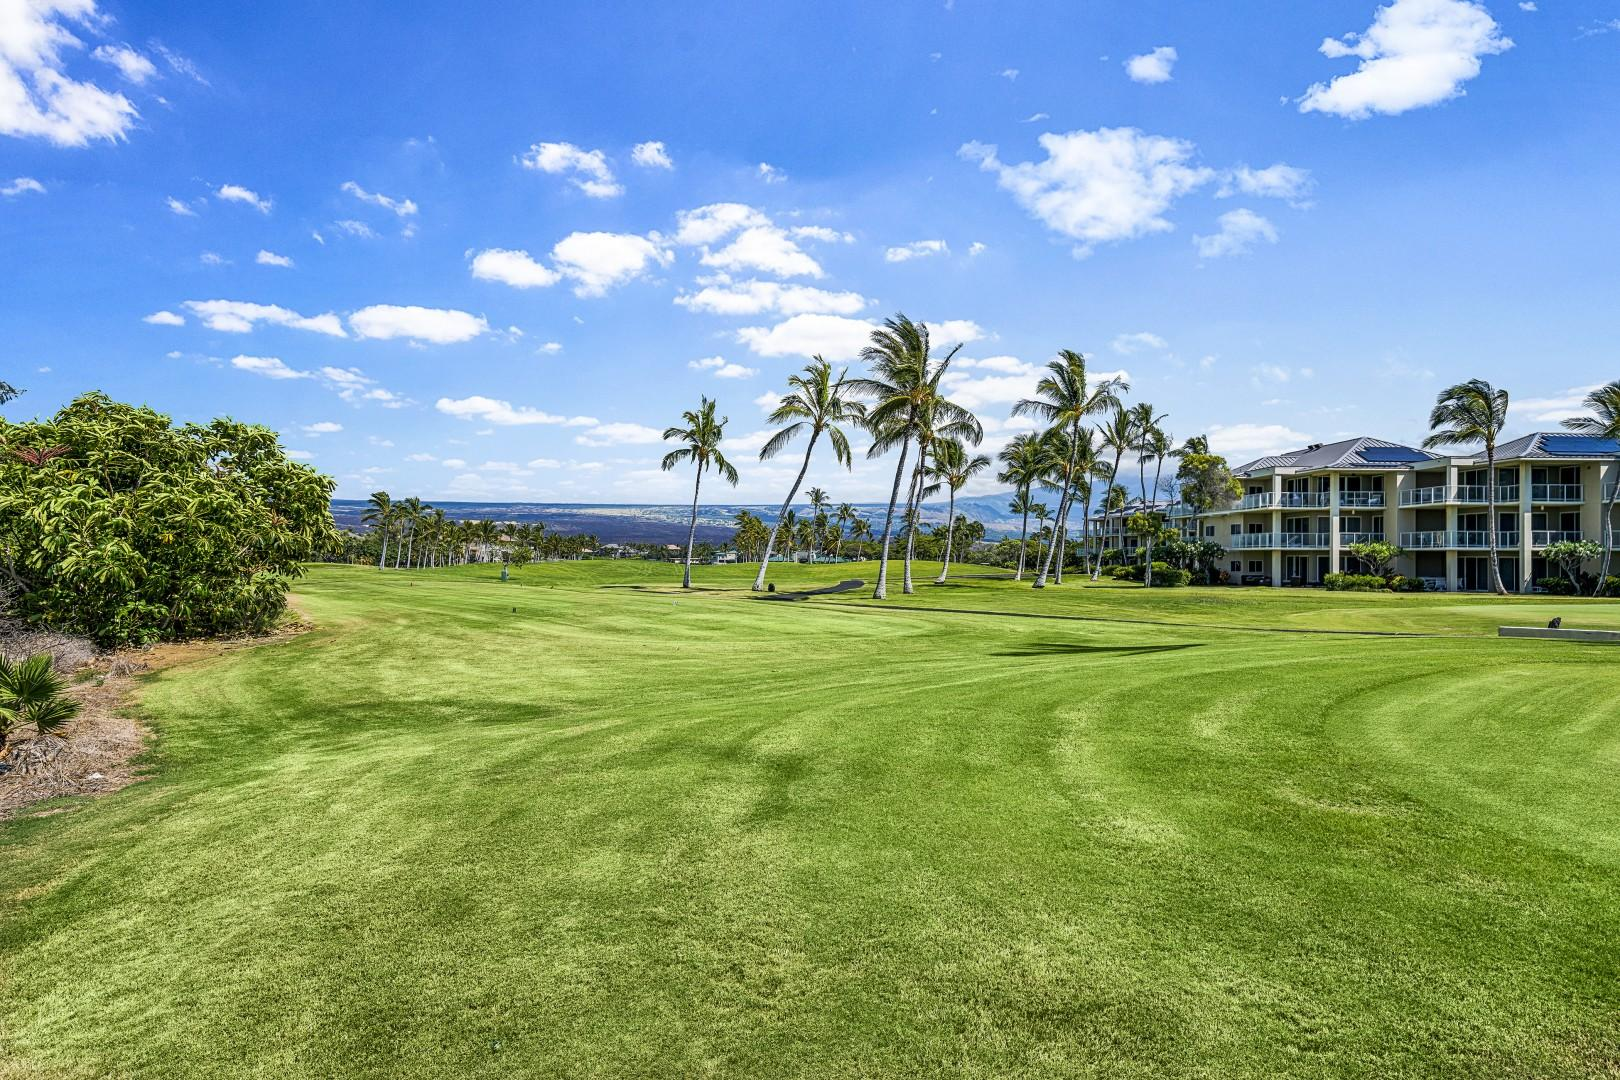 Waikoloa Beach course within walking distance